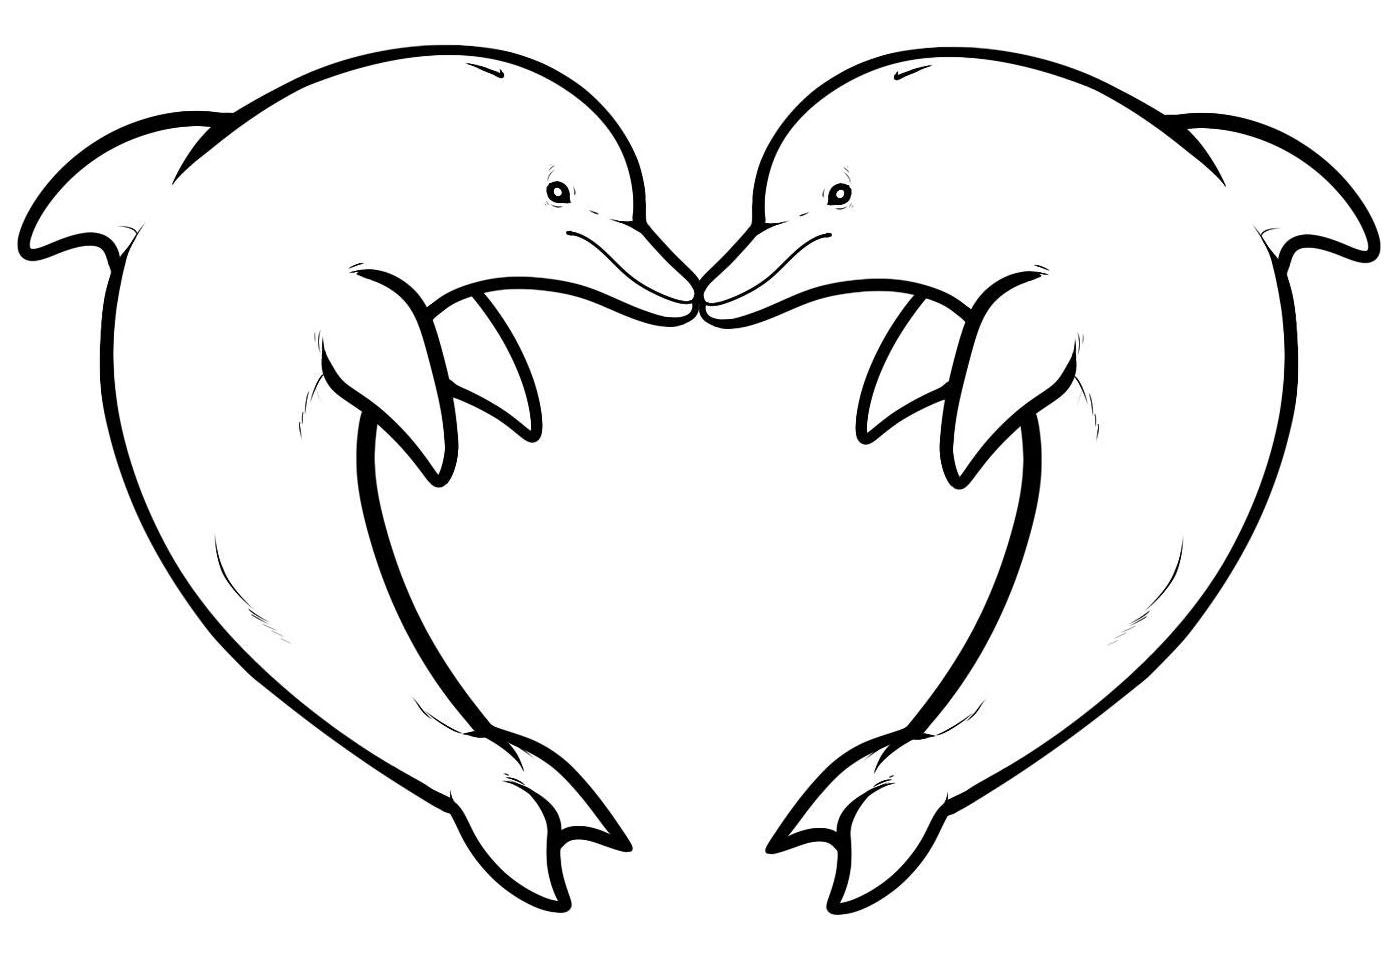 Dolphin Heart Coloring Pages Cool Dolphin Tale Coloring Pages